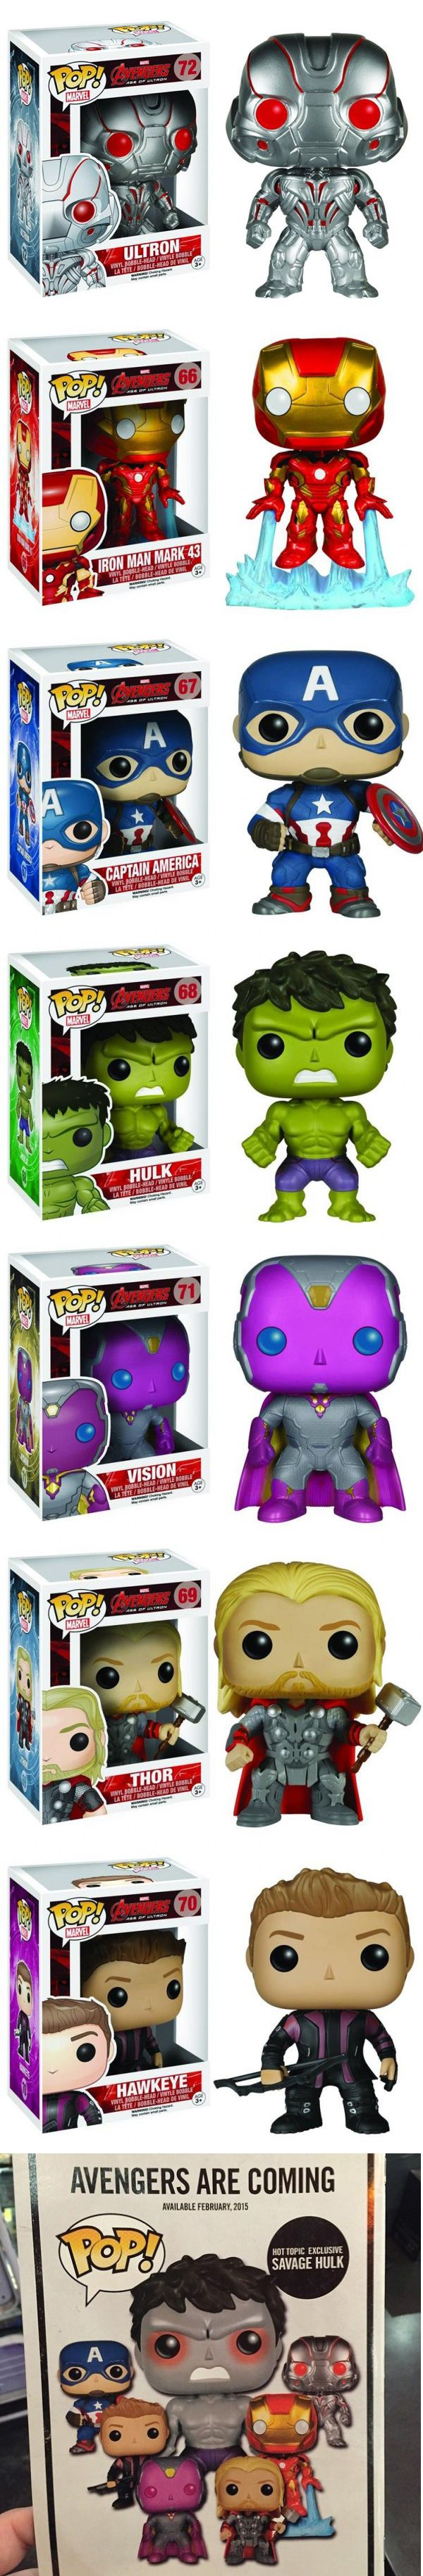 New Avengers: Age Of Ultron Funko Pops Hint At Changes For The Hulk Avengers fans, listen up! We've got some potentially spoiler-y news for you about a possible change that could occur for a Marvel character in the upcoming Avengers: Age of Ultron. We also have your first look at the Funko Pop! figures for the film. Read more at http://nerdapproved.com/toys/new-avengers-age-of-ultron-funko-pops-hint-at-changes-for-the-hulk/#KwOemRQs28Bw75J2.99